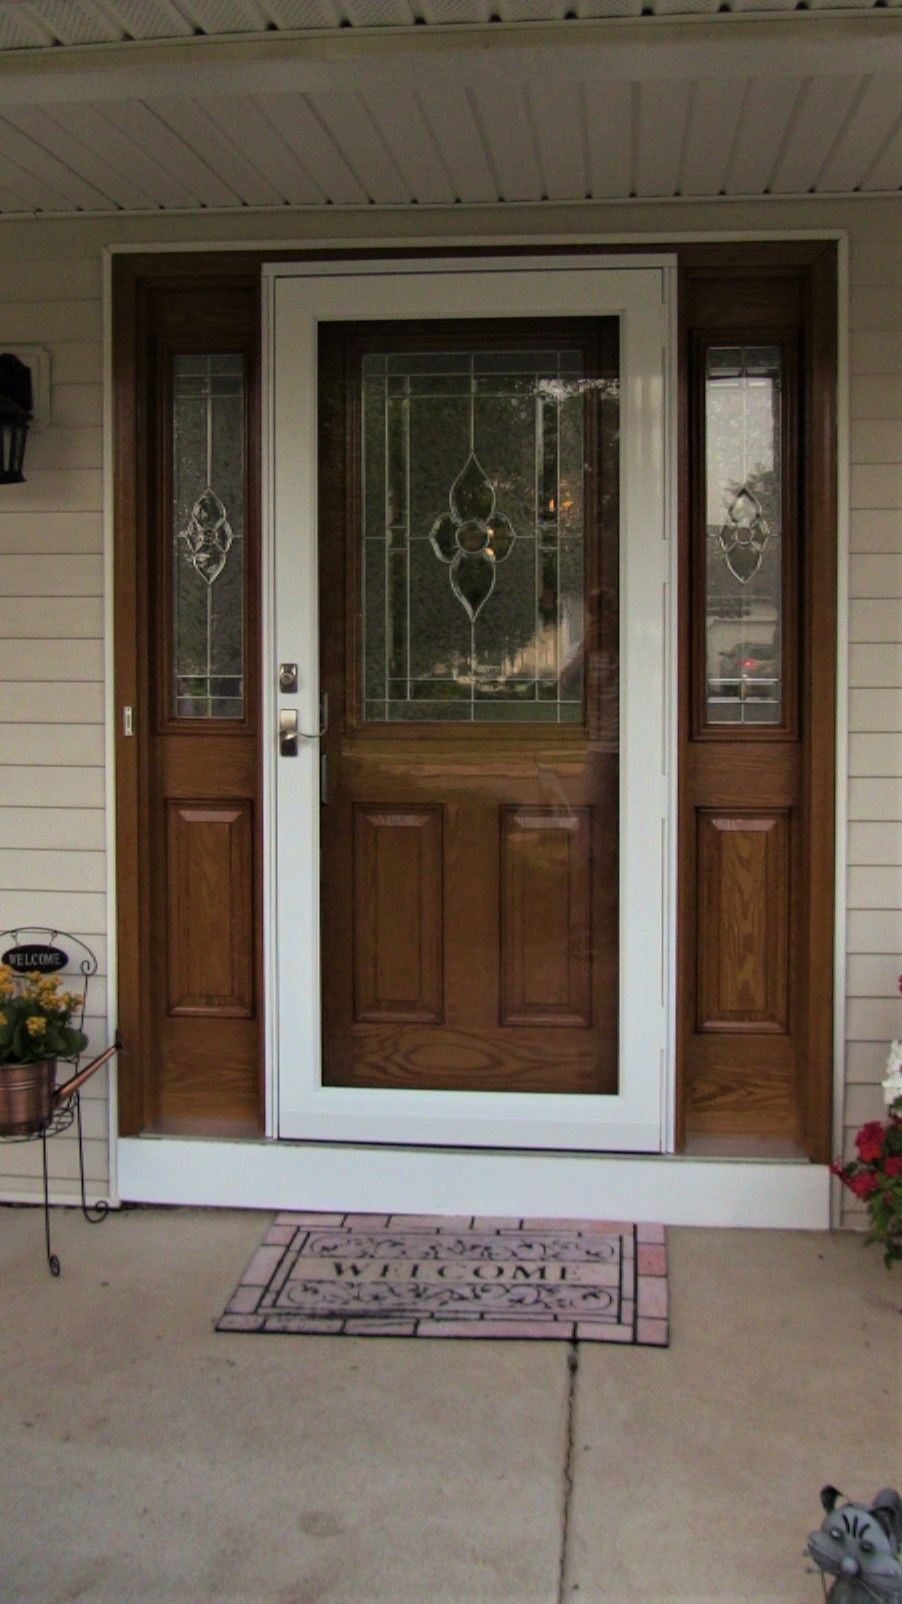 A Beautiful New Storm Door To Go Along With The Entry Maximize